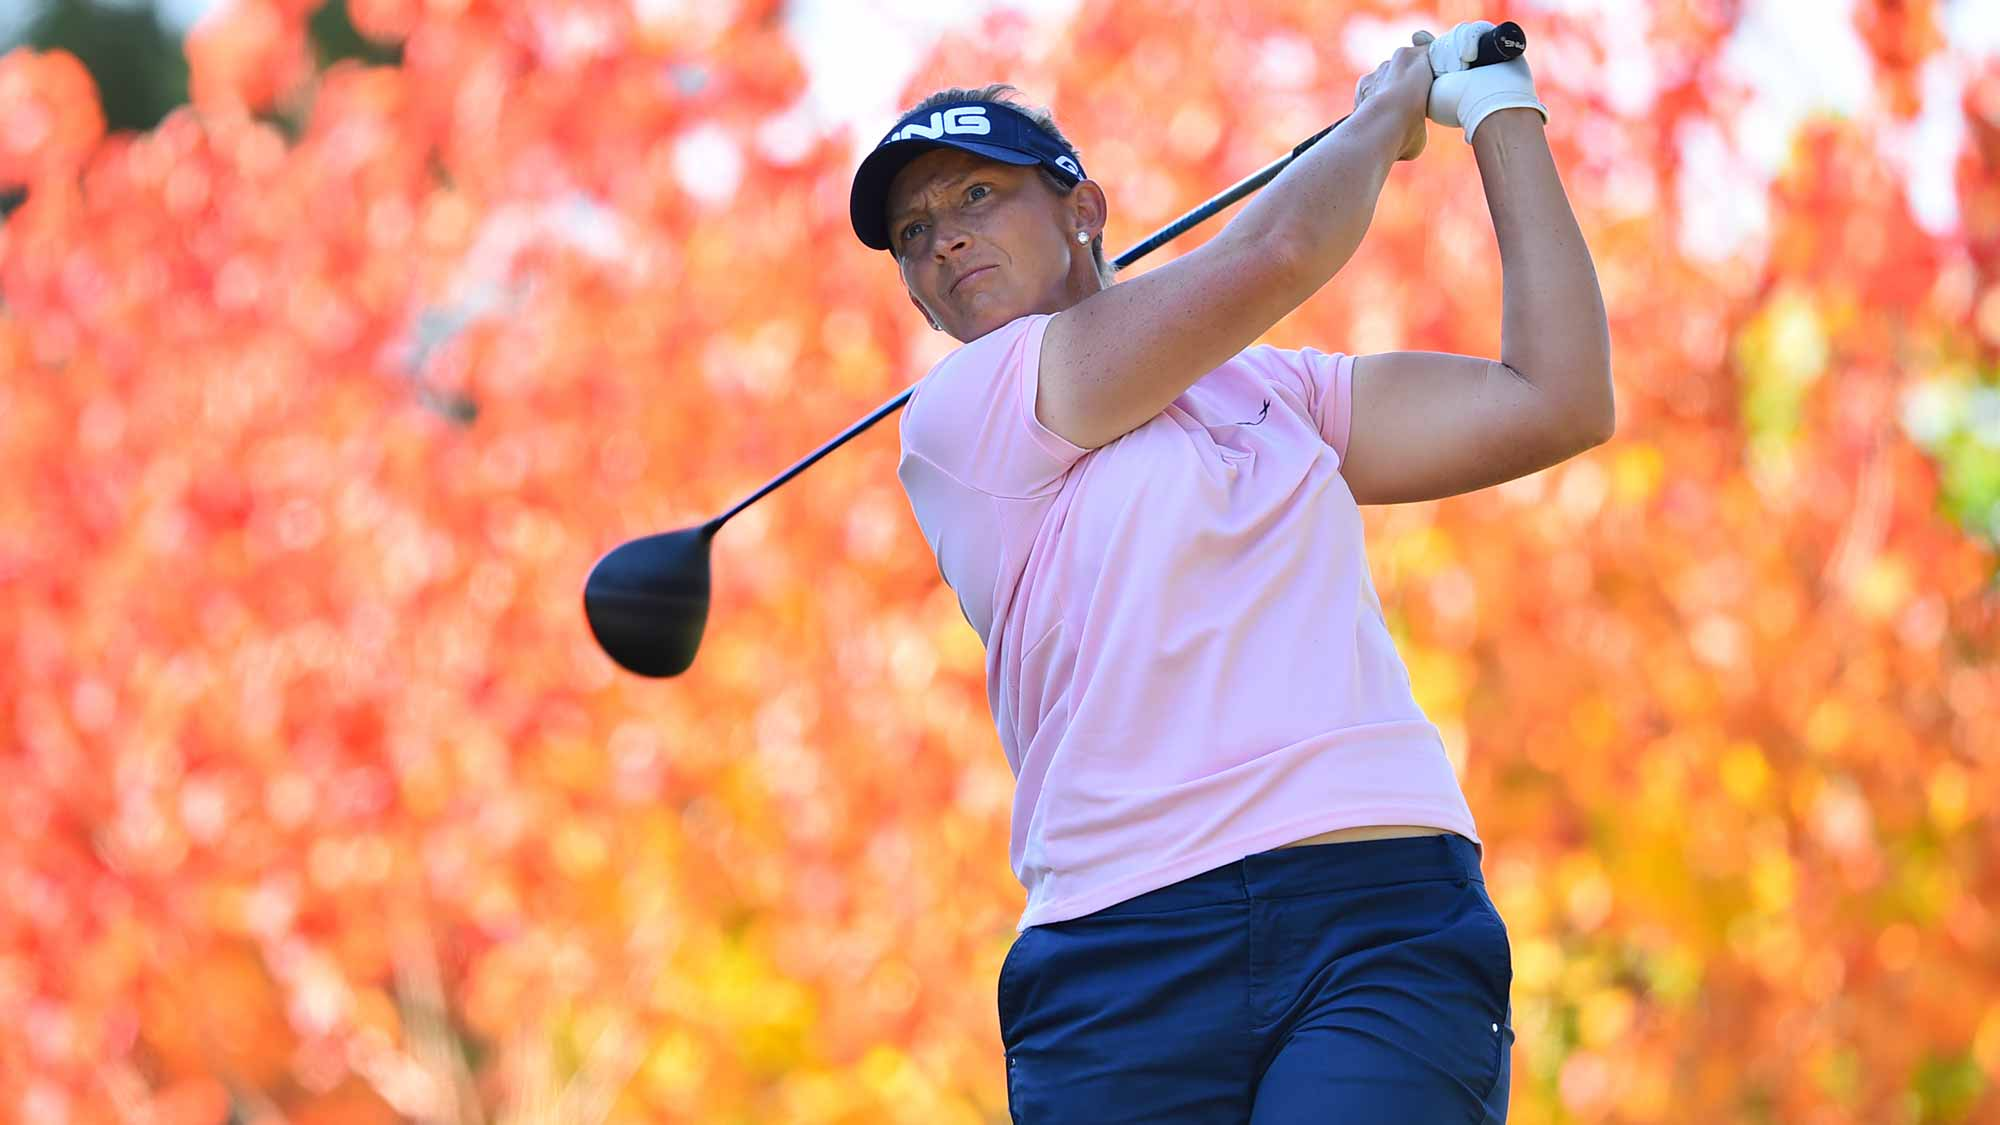 Angela Stanford of the USA hits her tee shot on the 2nd hole during the first round of the TOTO Japan Classics 2015 at the Kintetsu Kashikojima Country Club